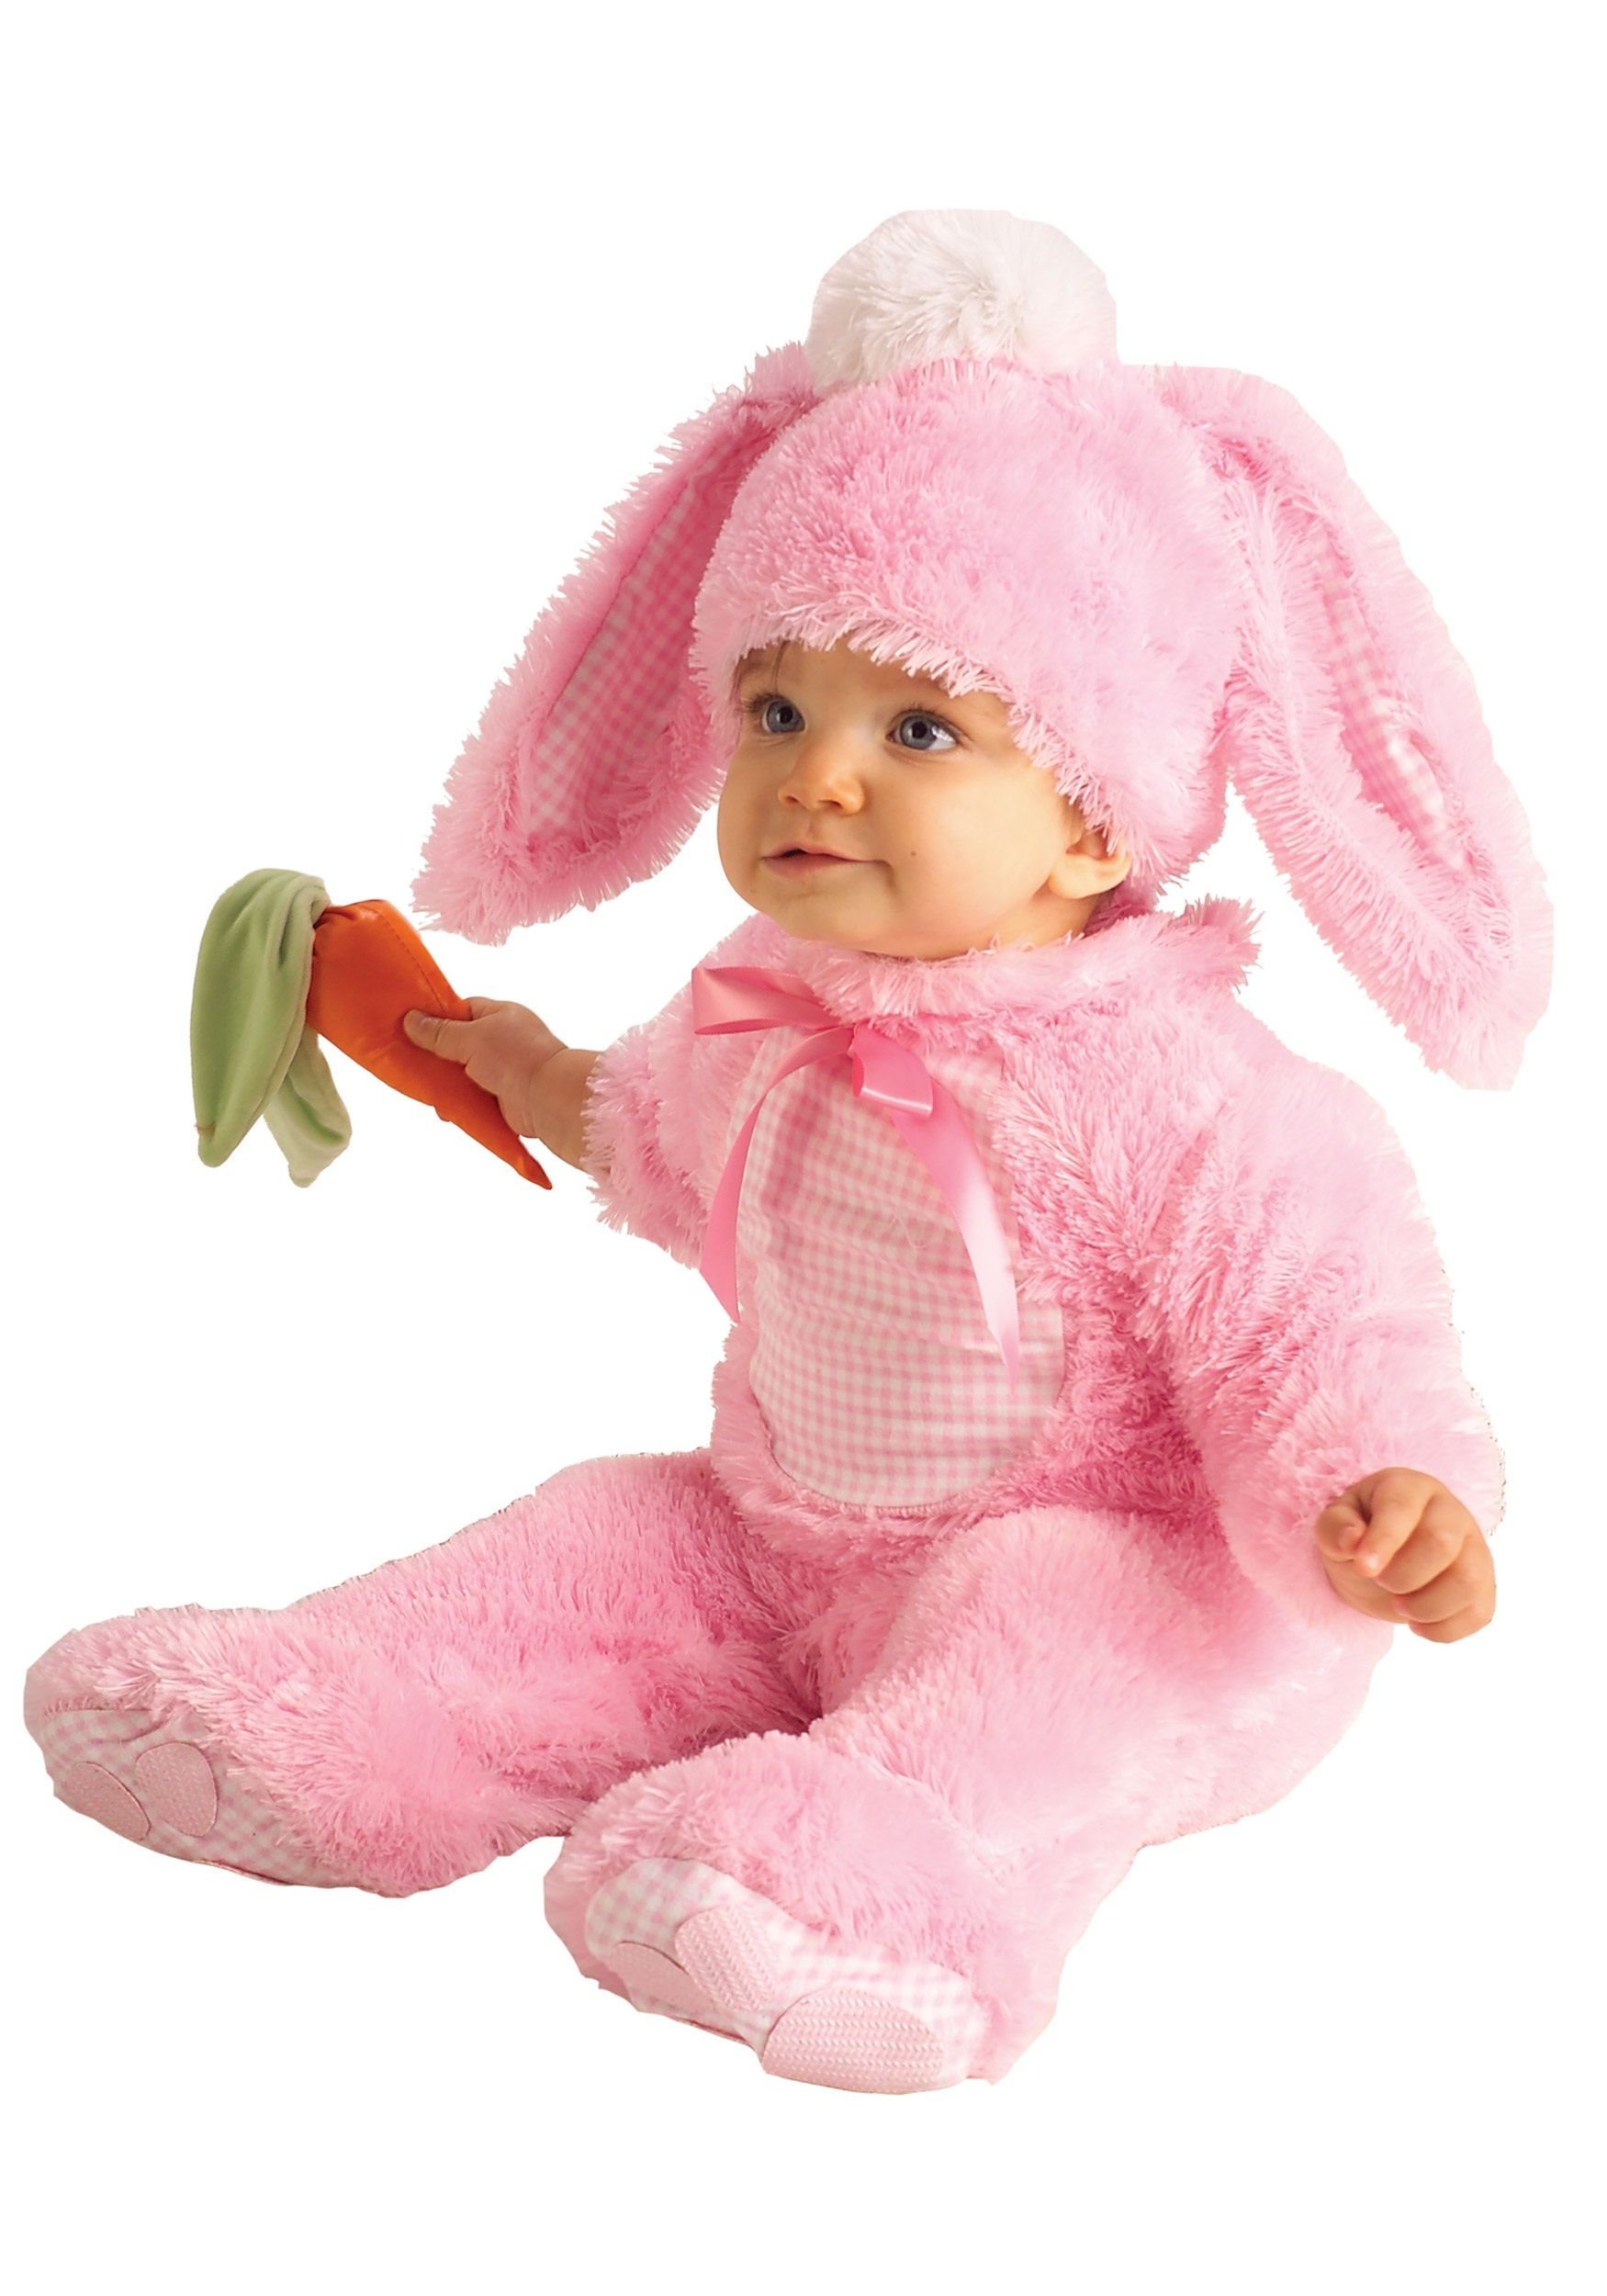 Baby Pink Bunny Costume Landy Pinterest